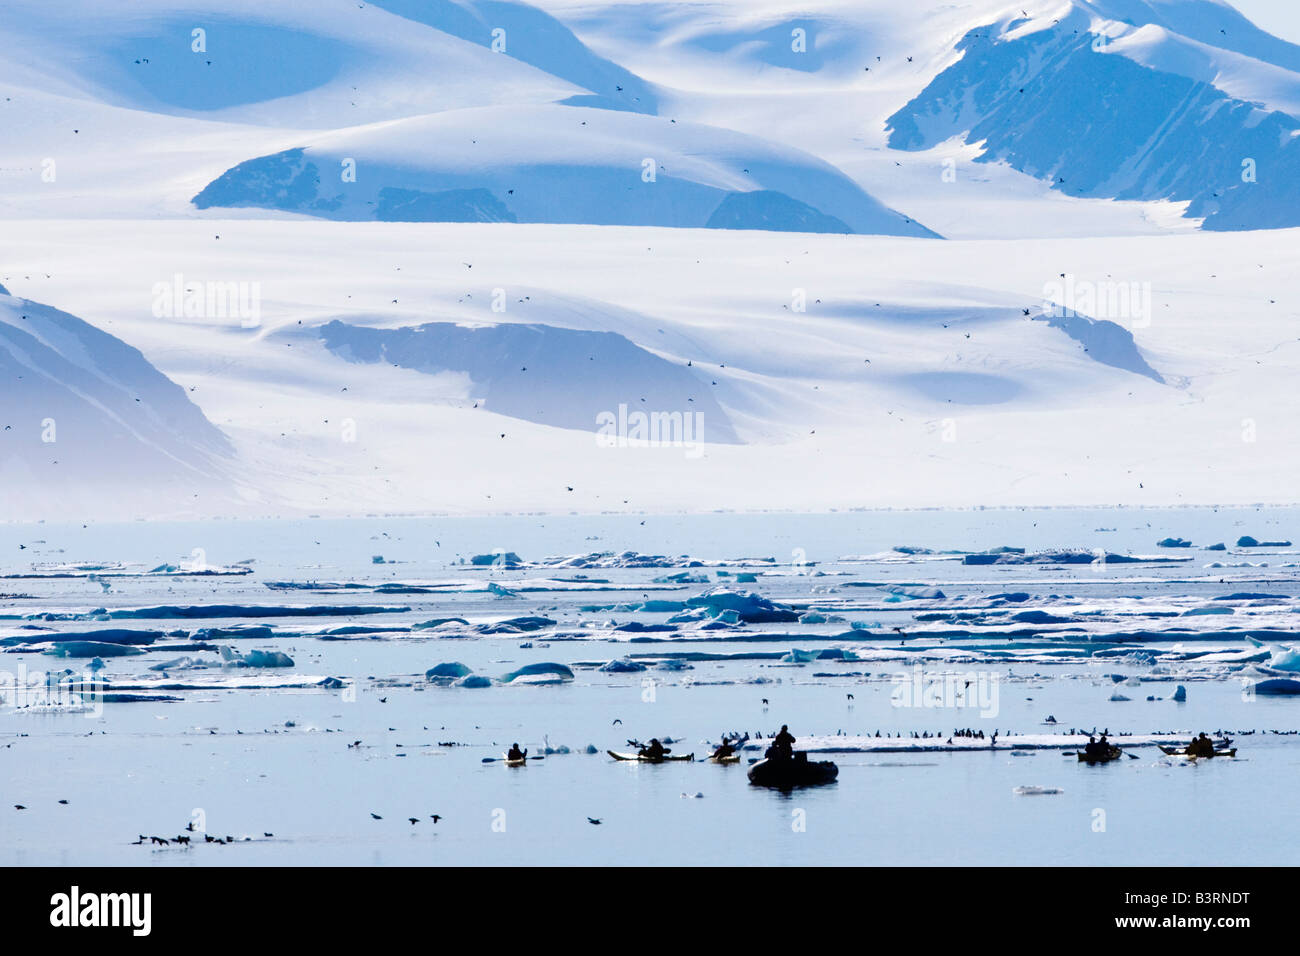 Kayakers by ice berg off coast of Nunavut, Canada - Stock Image